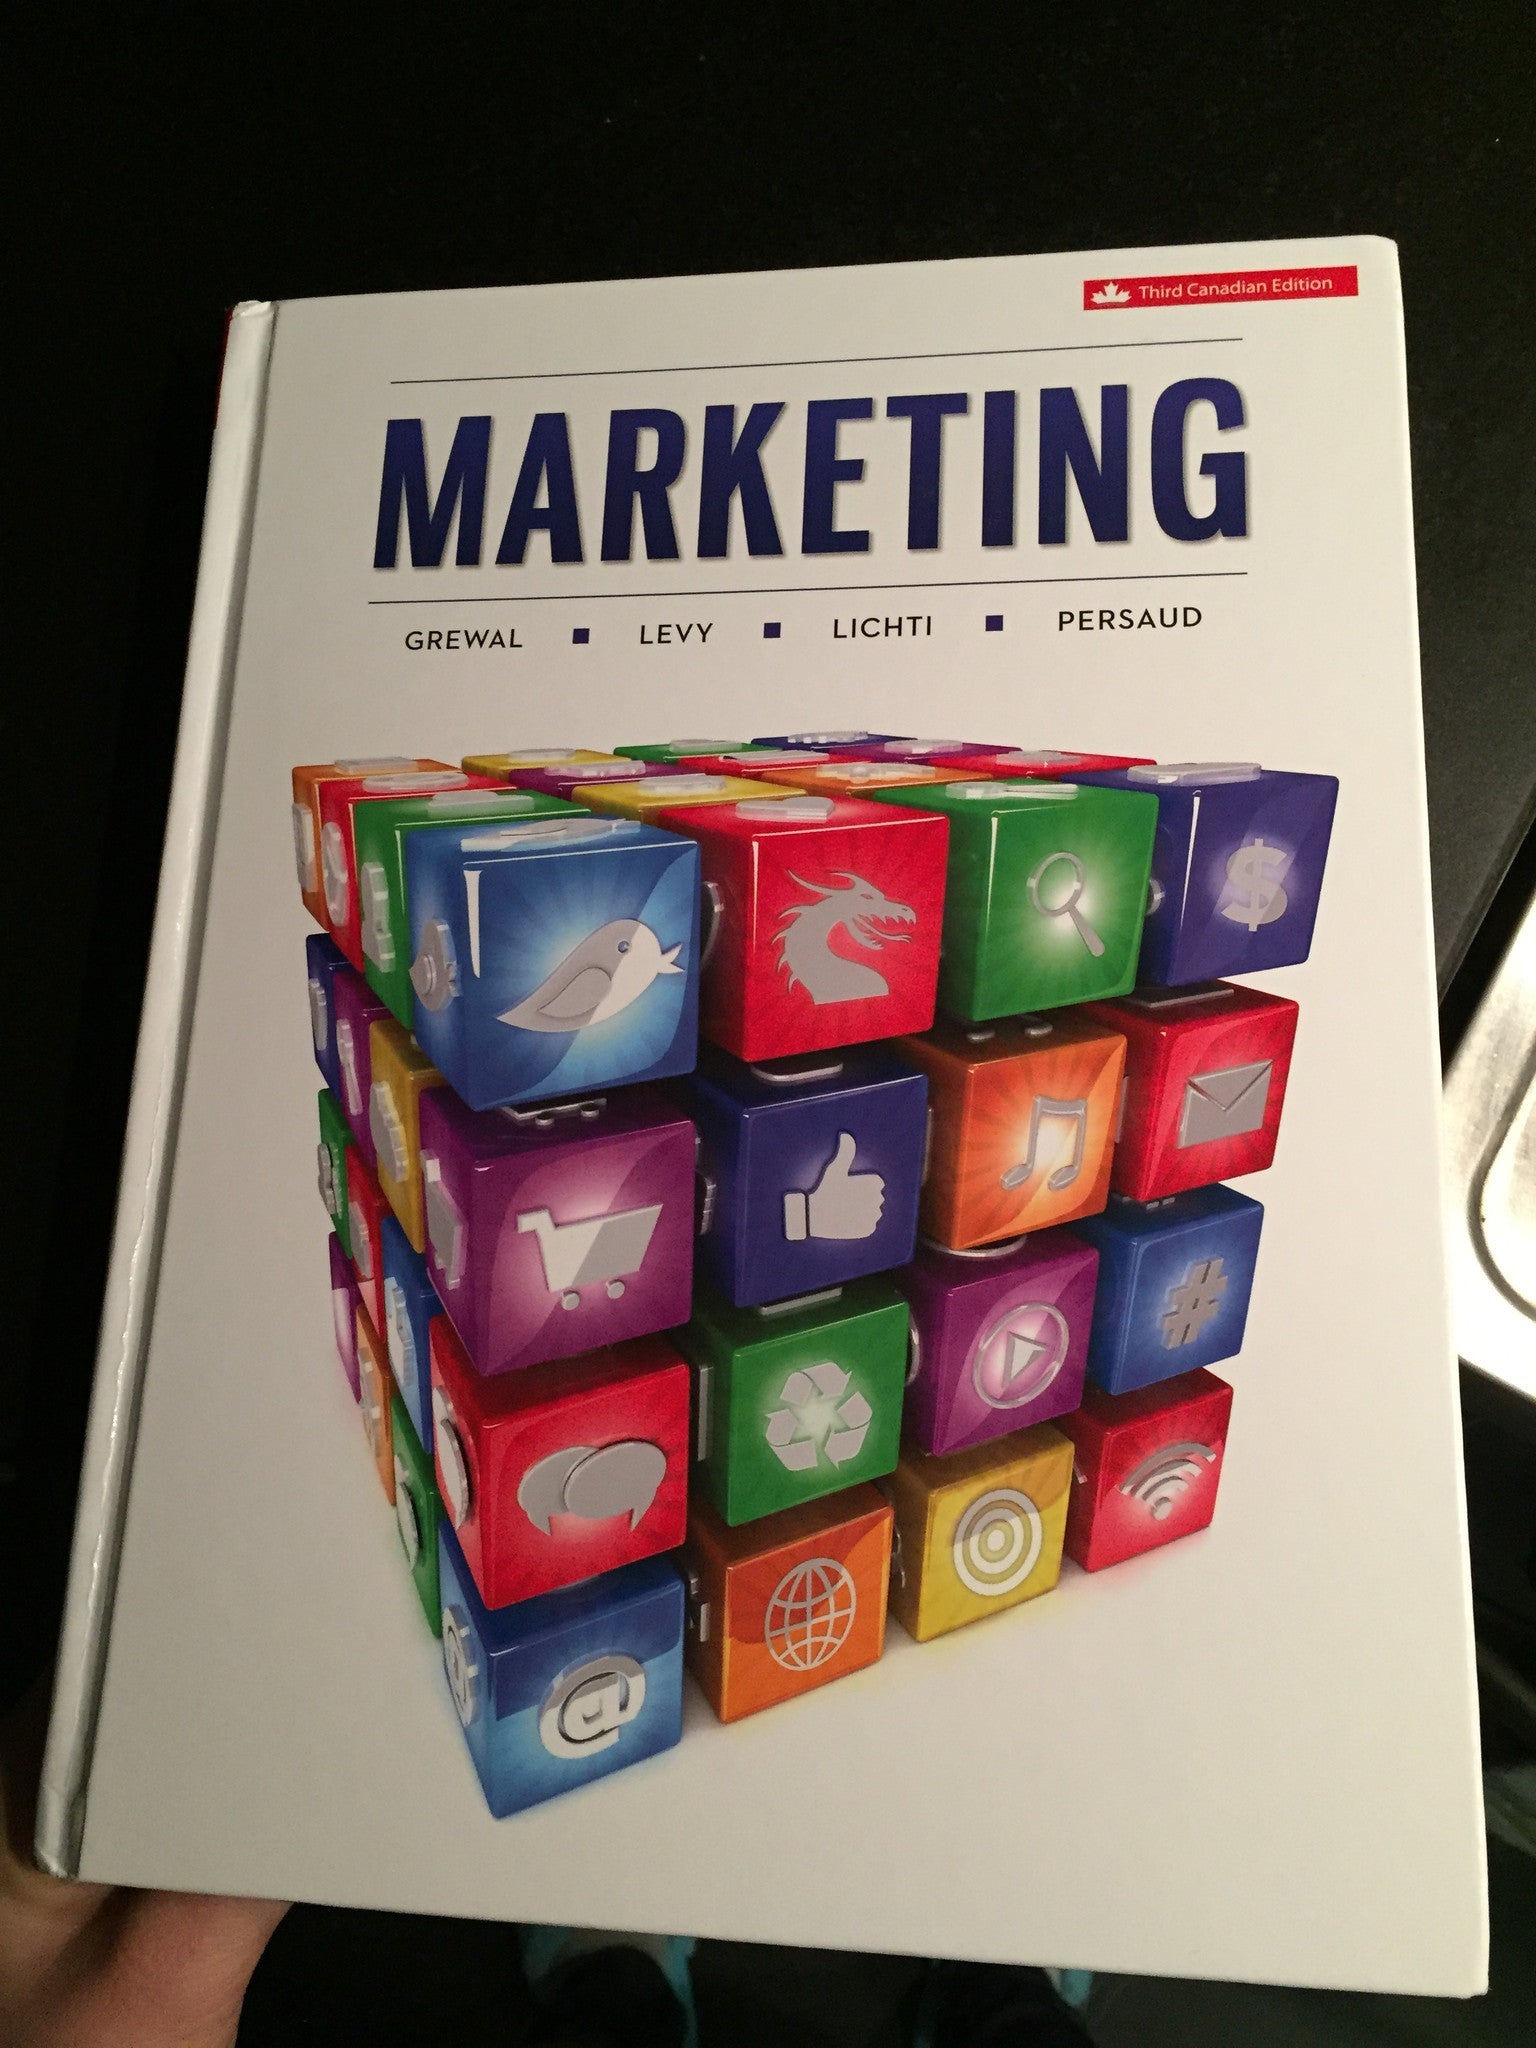 BeautyGram's gift basket company was published in a Canadian Marketing textbook